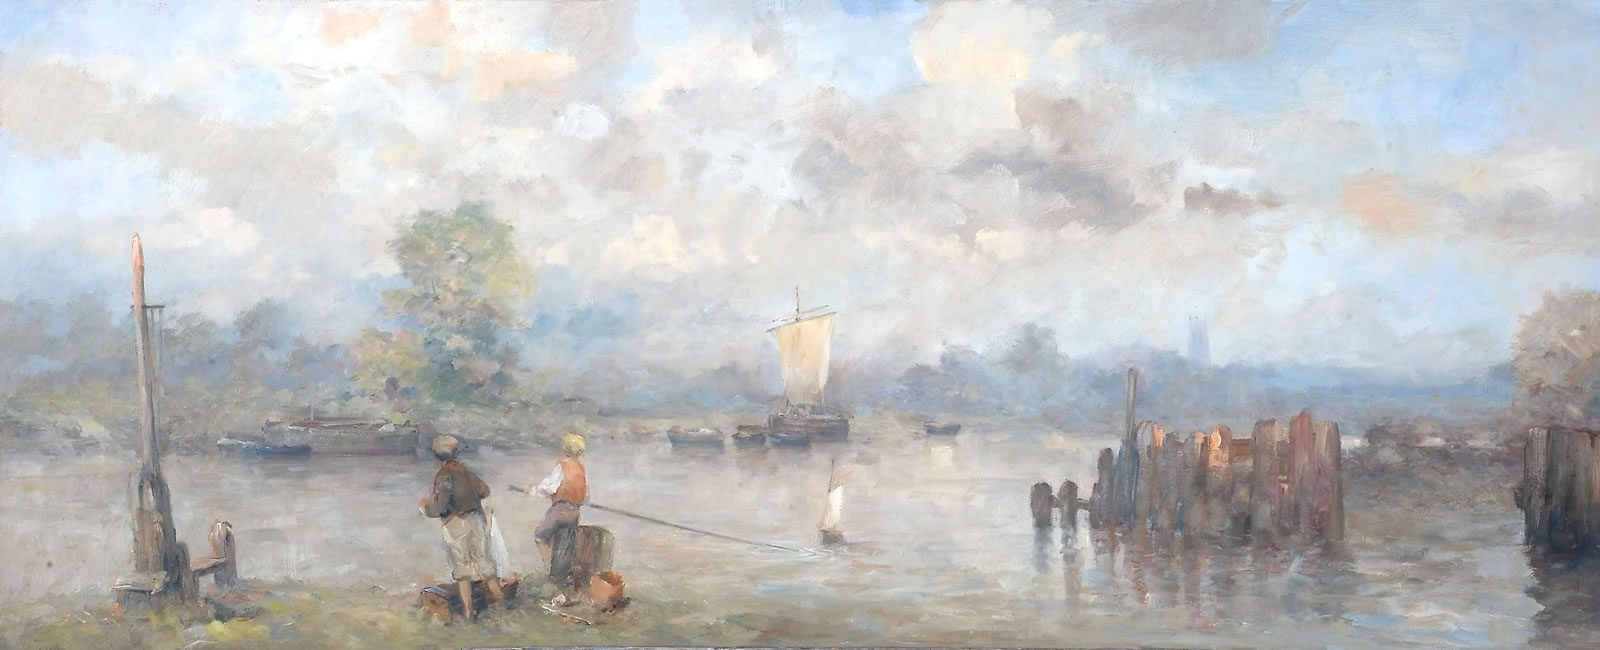 Oil painting of boys playing with a model yacht close by a haven with moored sailboat